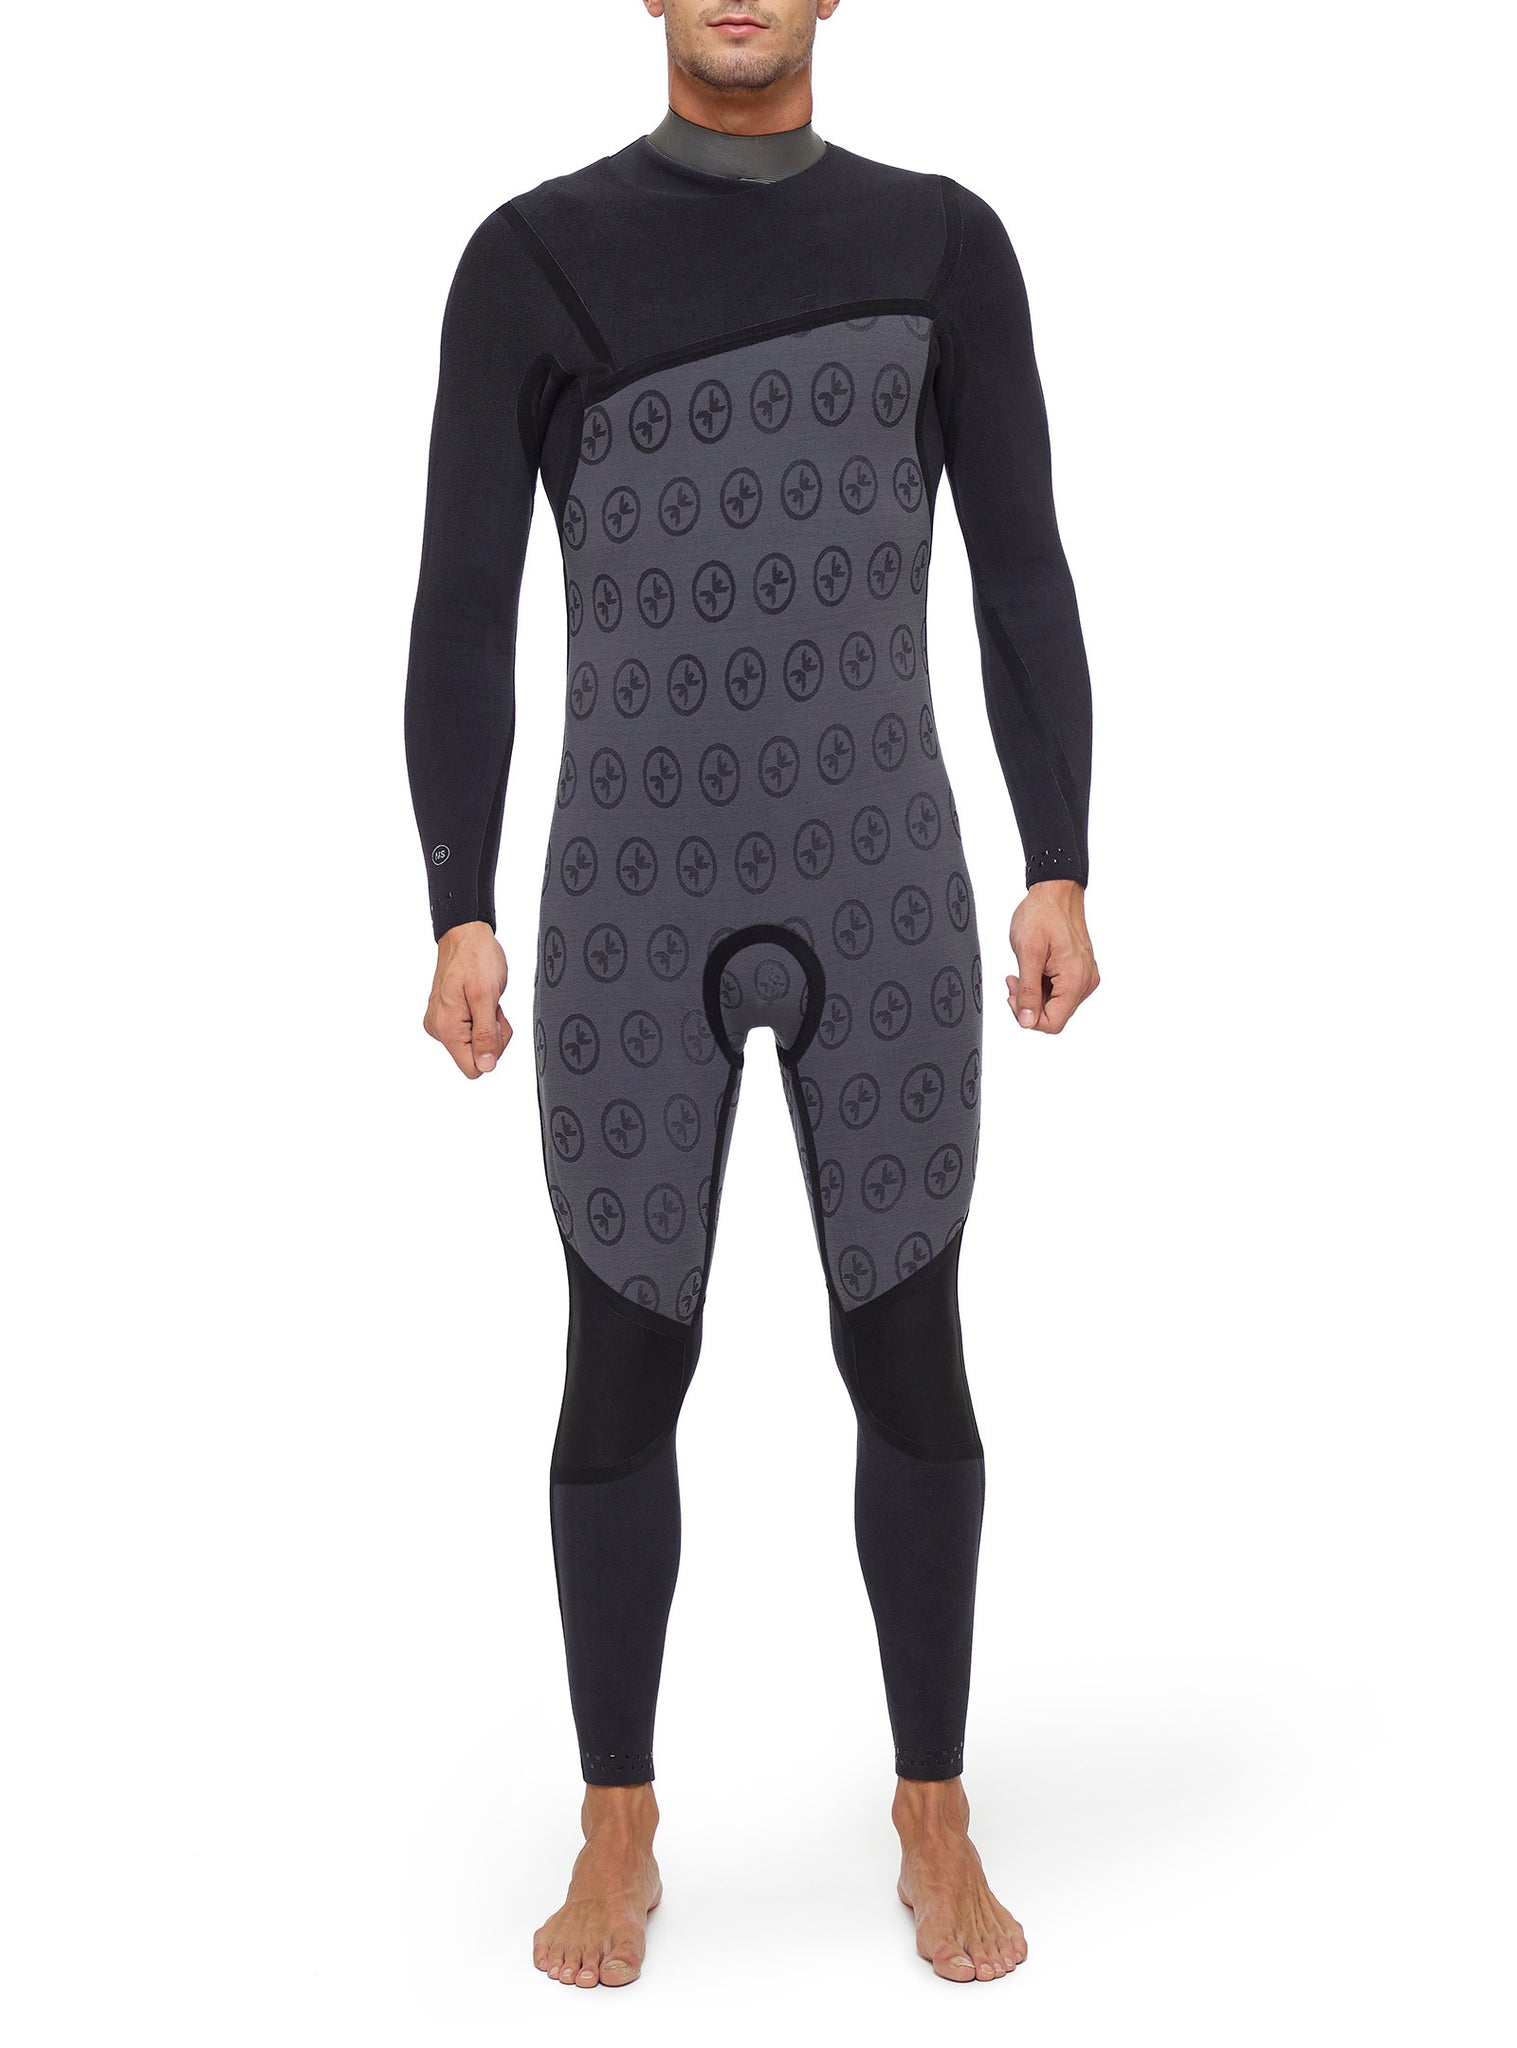 Wetsuit Man Competition 4/3 Chest Zip Dark Blue